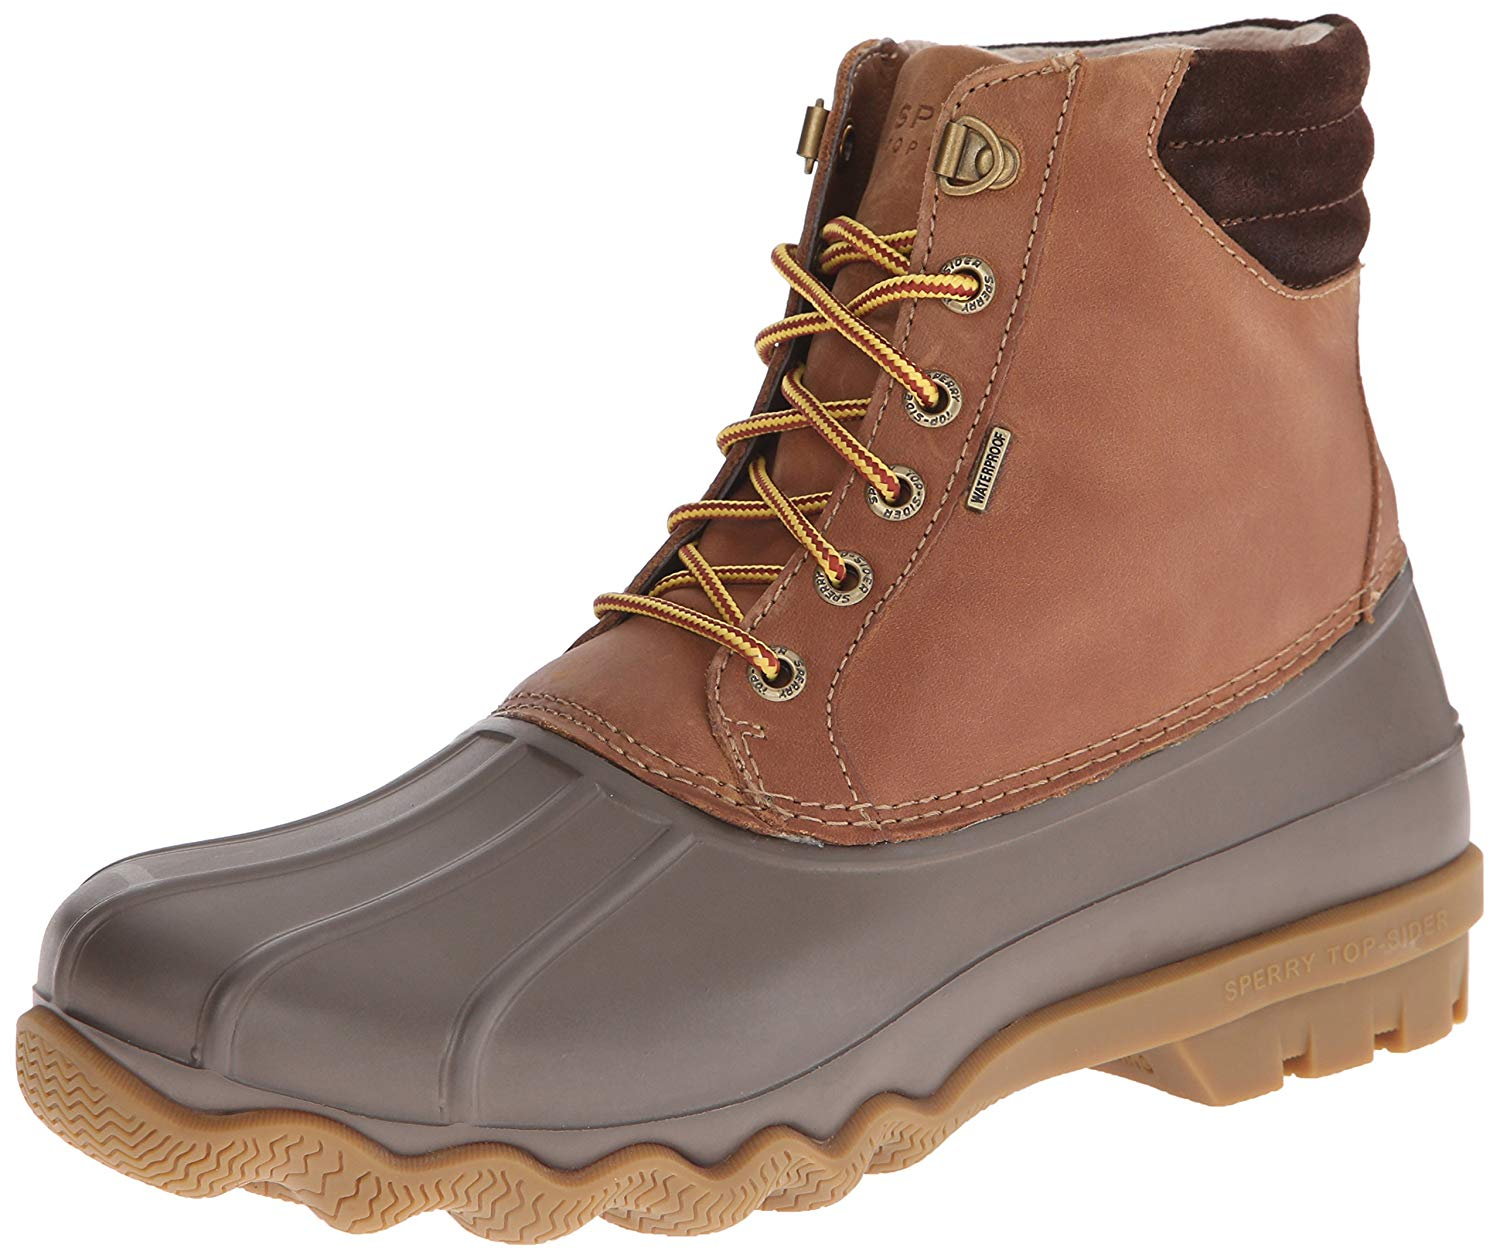 Sperry Top-Sider Men's Avenue Duck Boot Chukka Boot